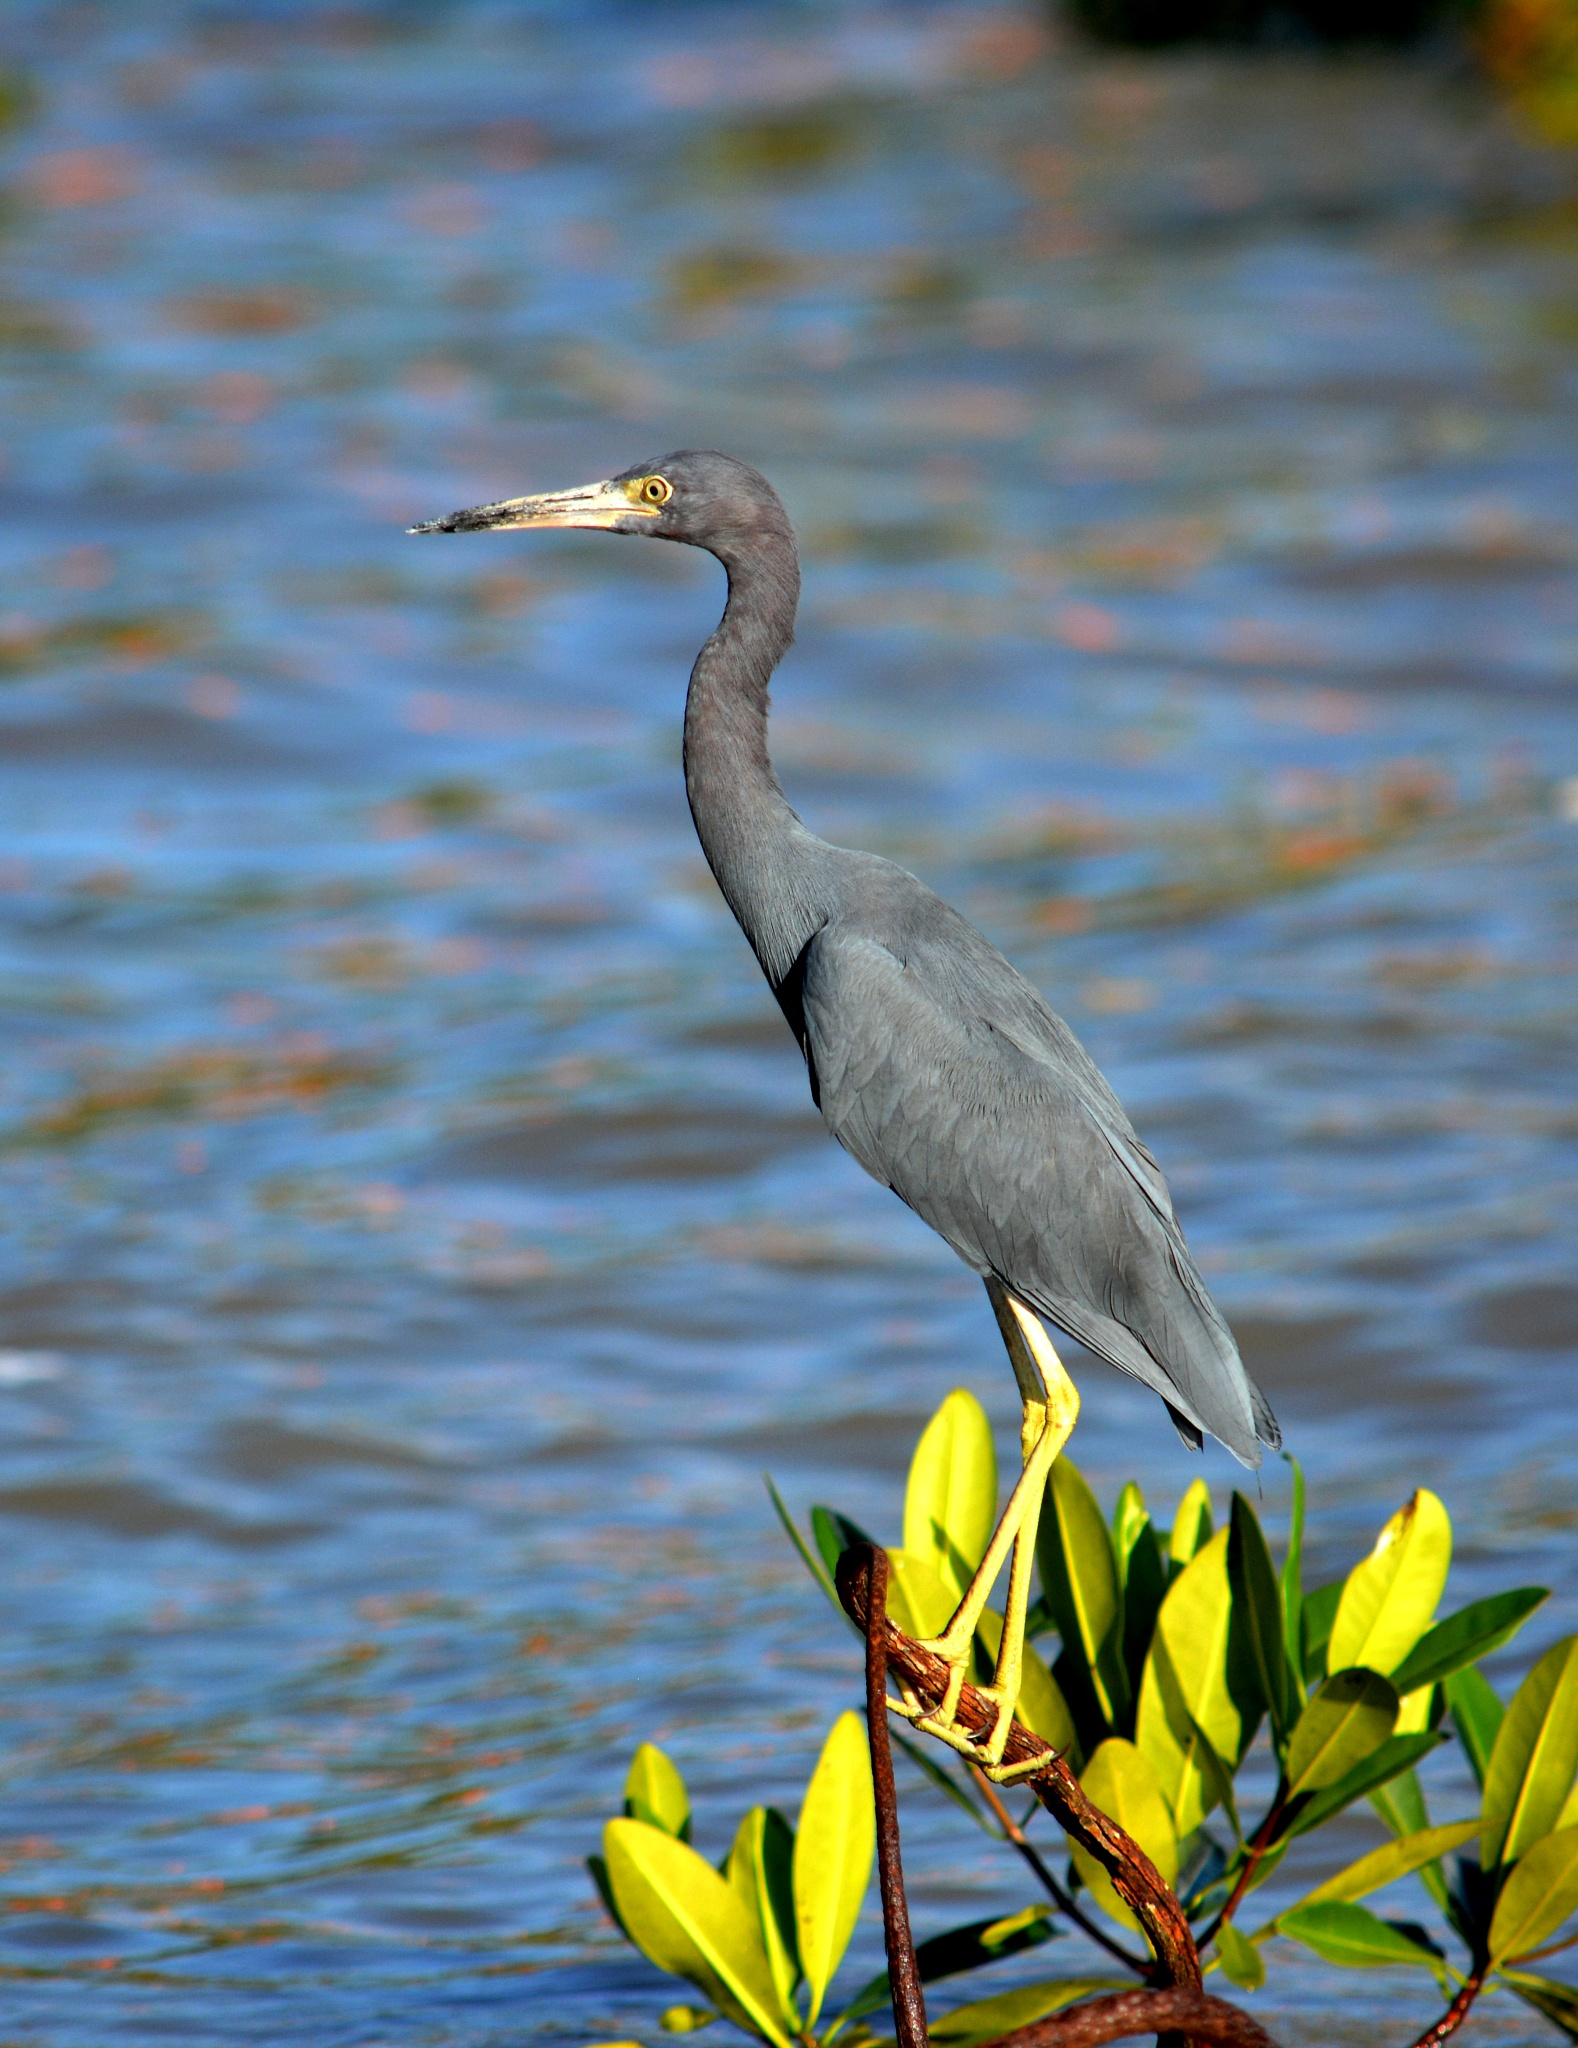 Stately Blue Heron by laboisselle